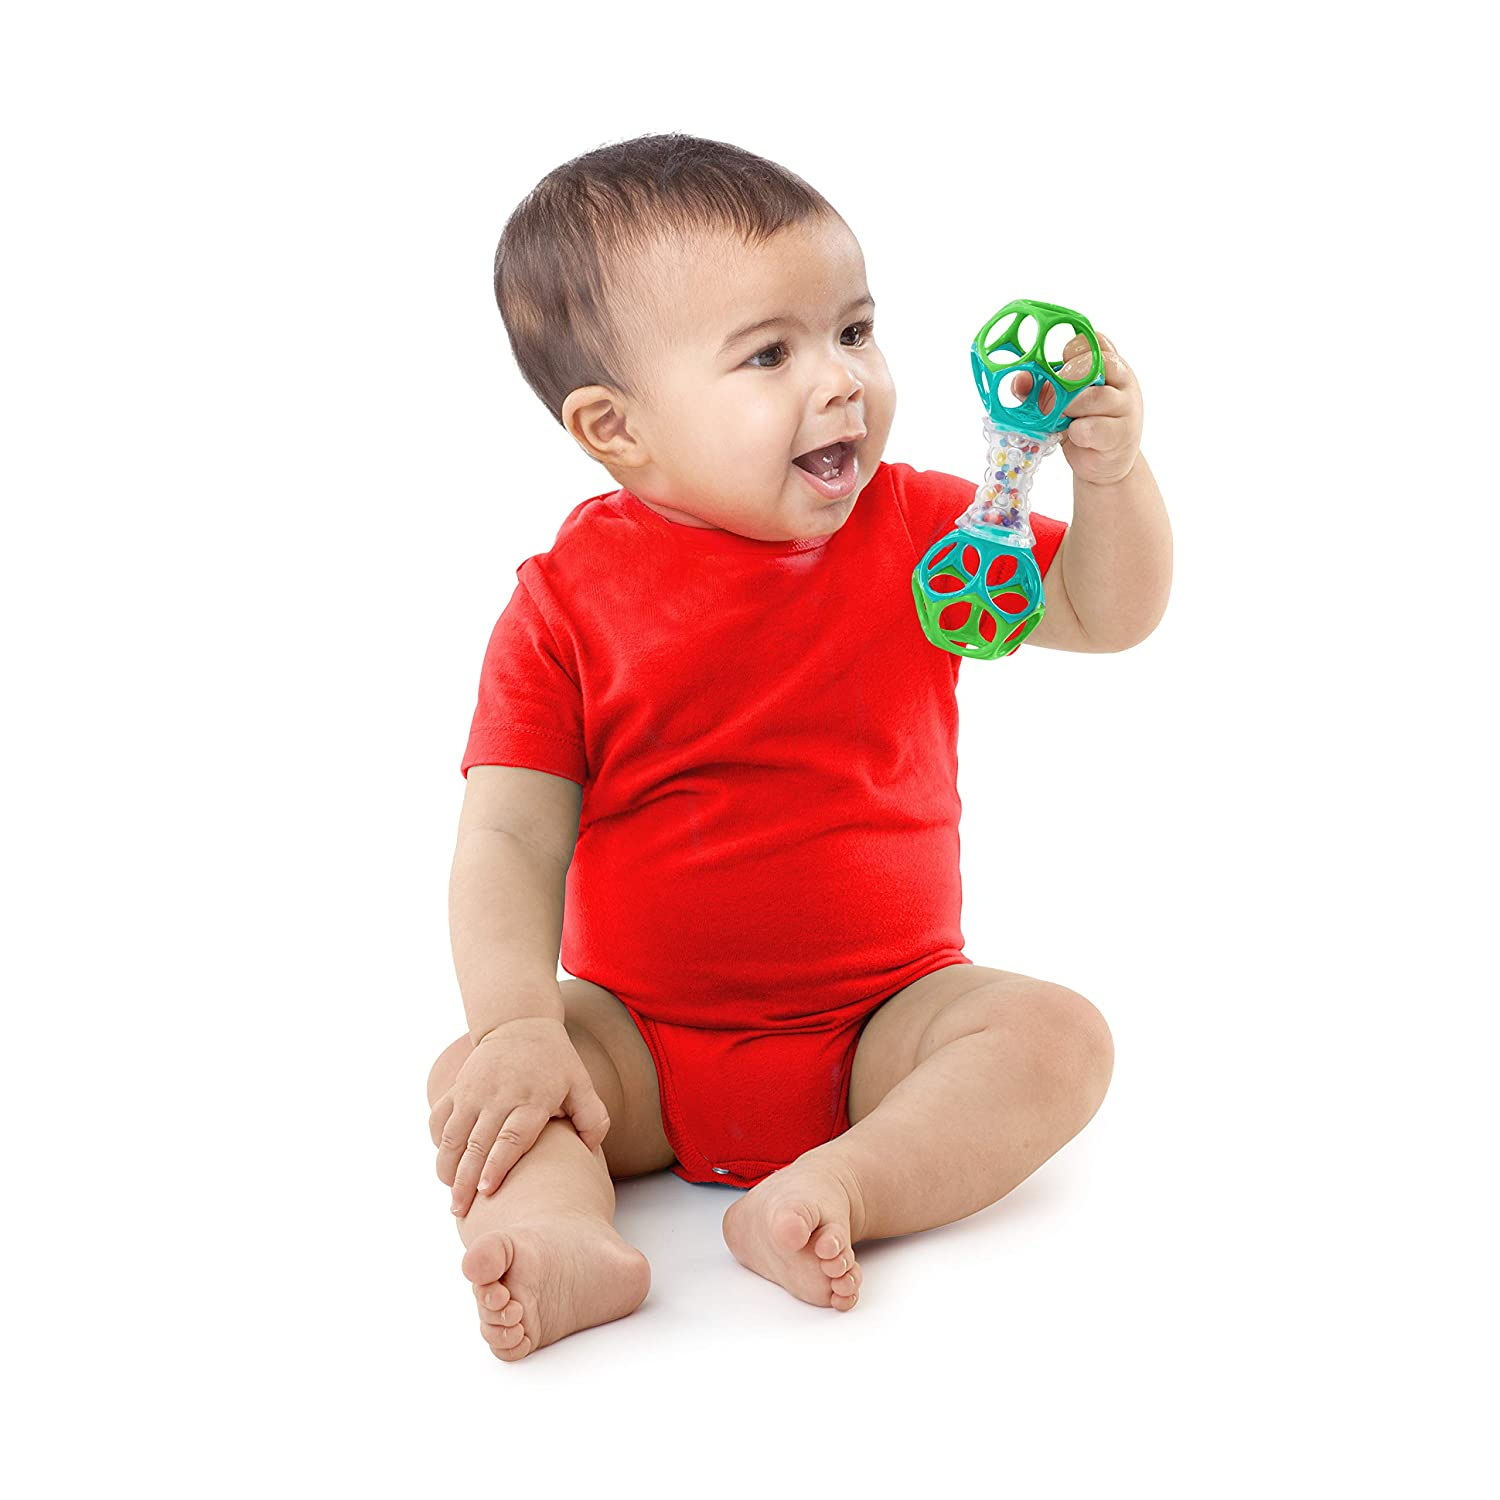 O Ball Bright Starts Oball Shaker Rattle Toy, Ages Newborn Plus : Baby Rattles : Baby